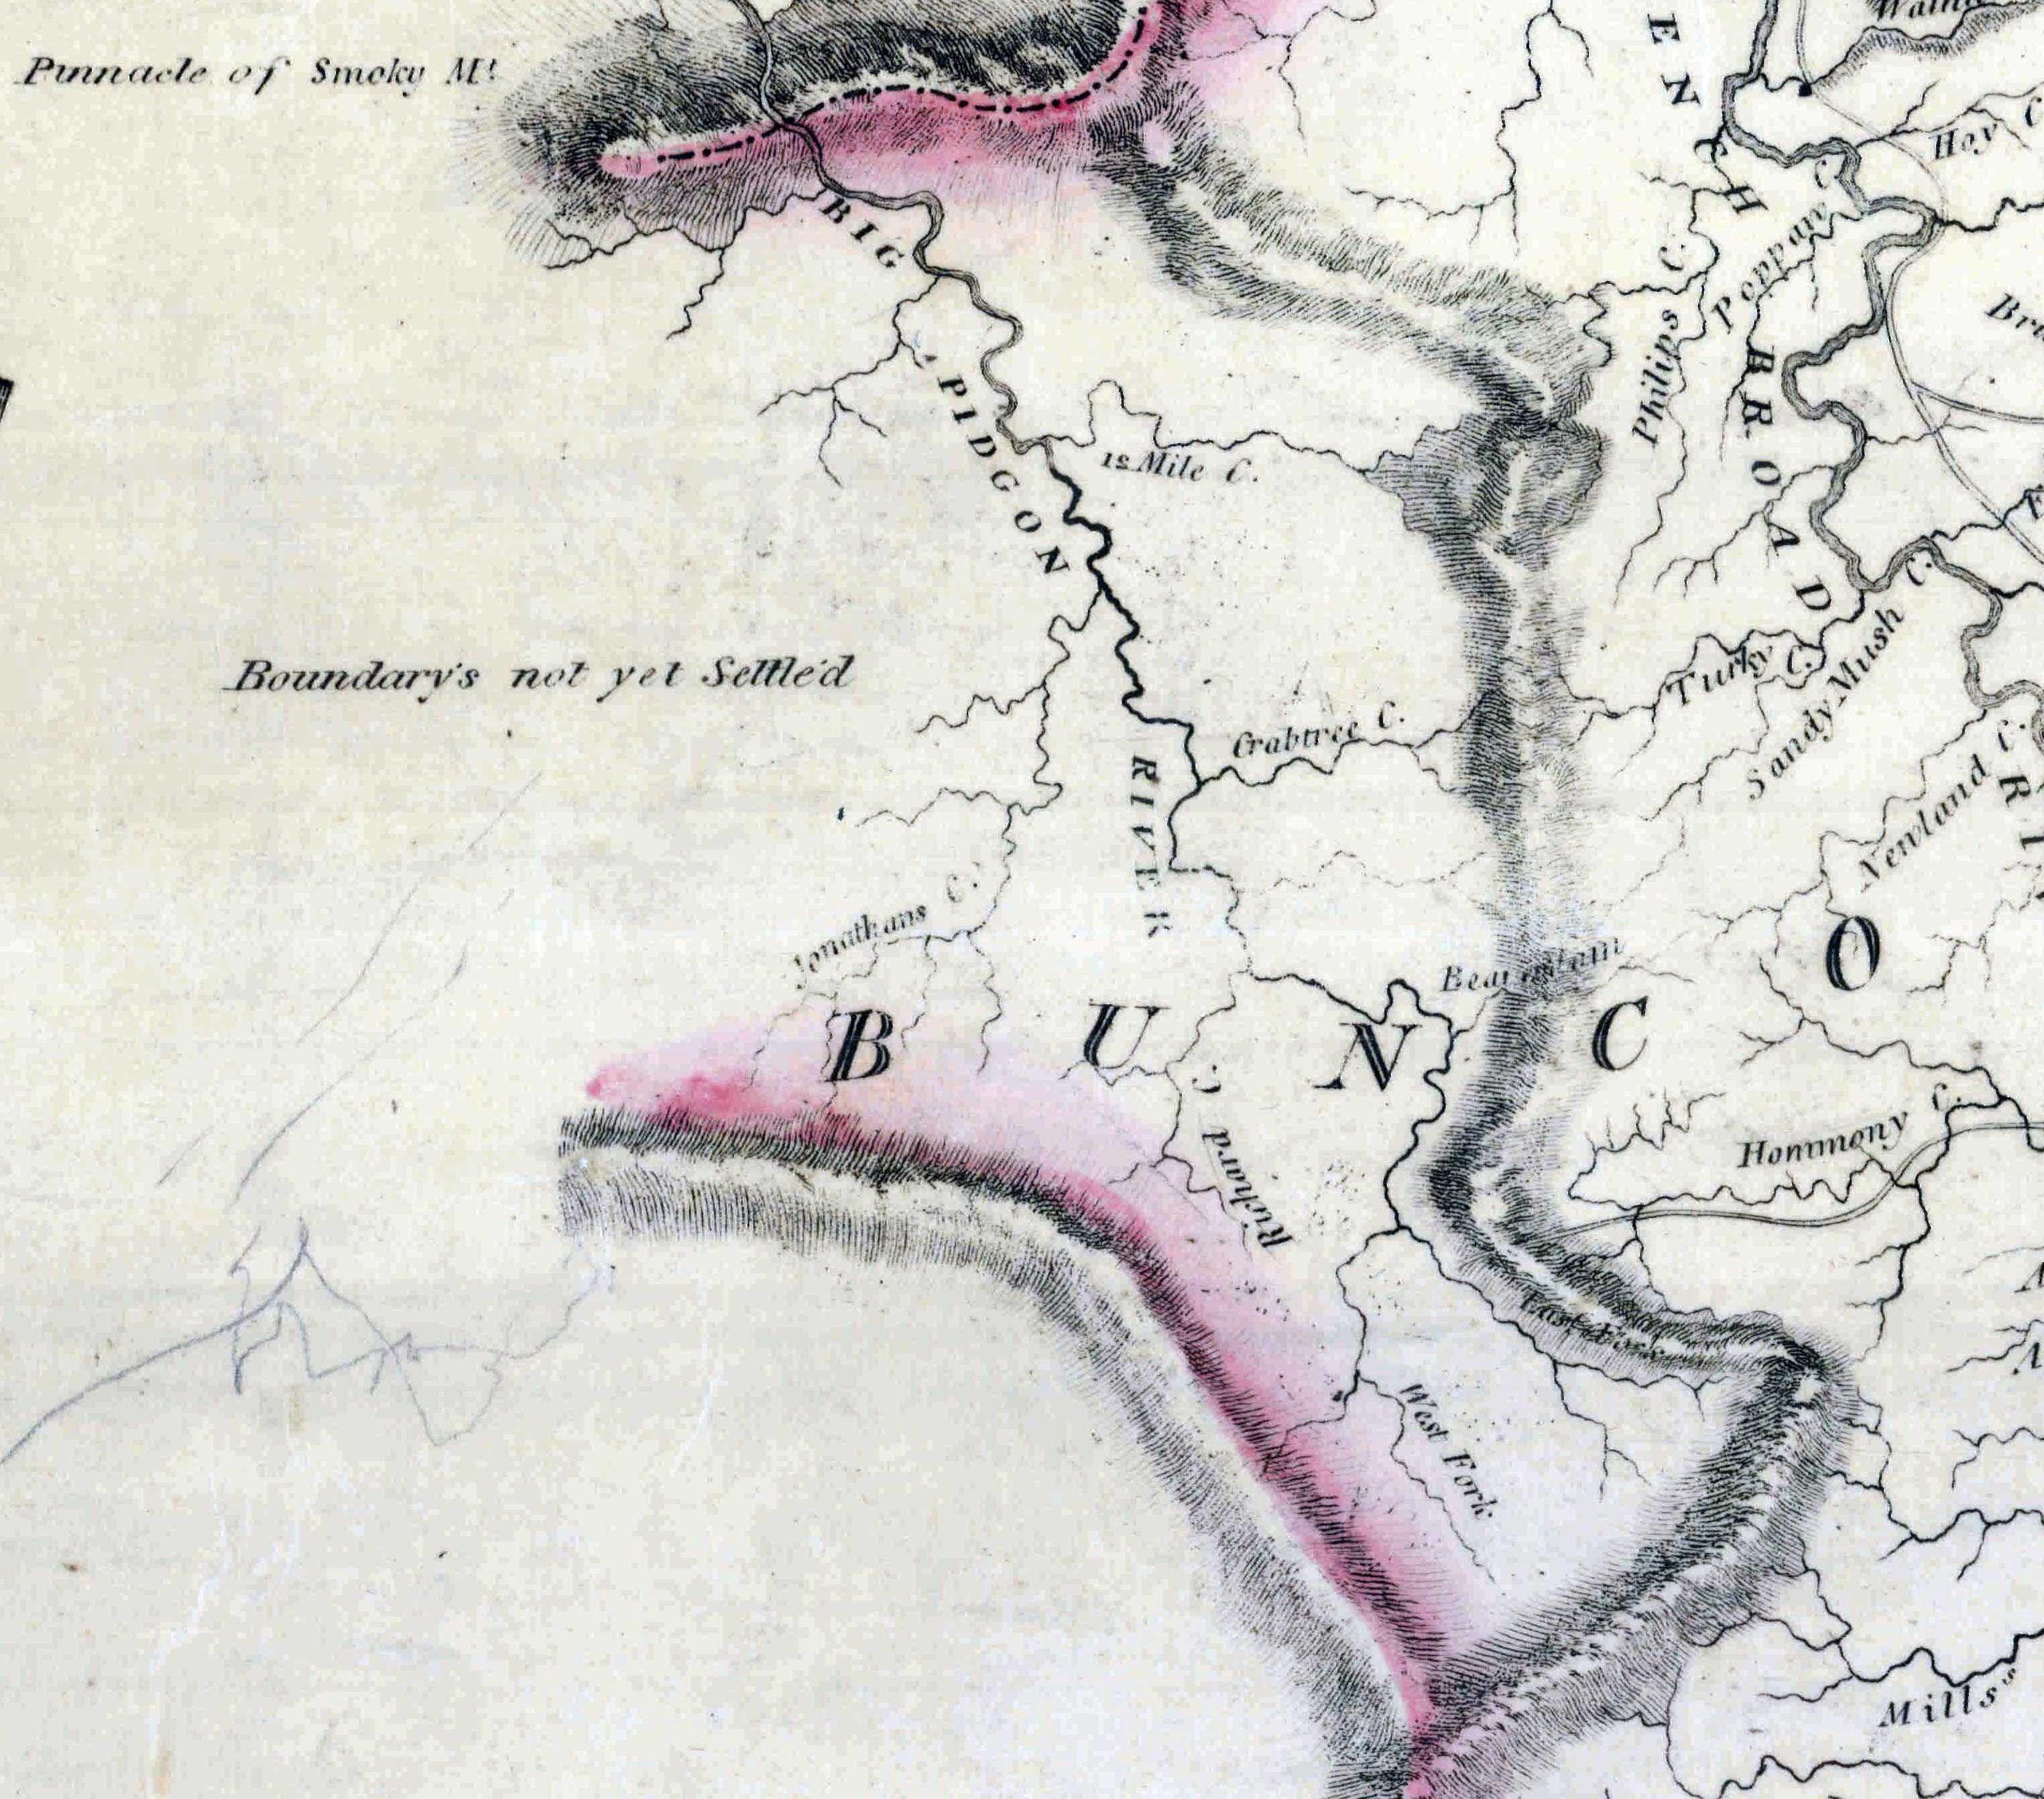 1808 Price Strother Map Of Nc Image From National Archives